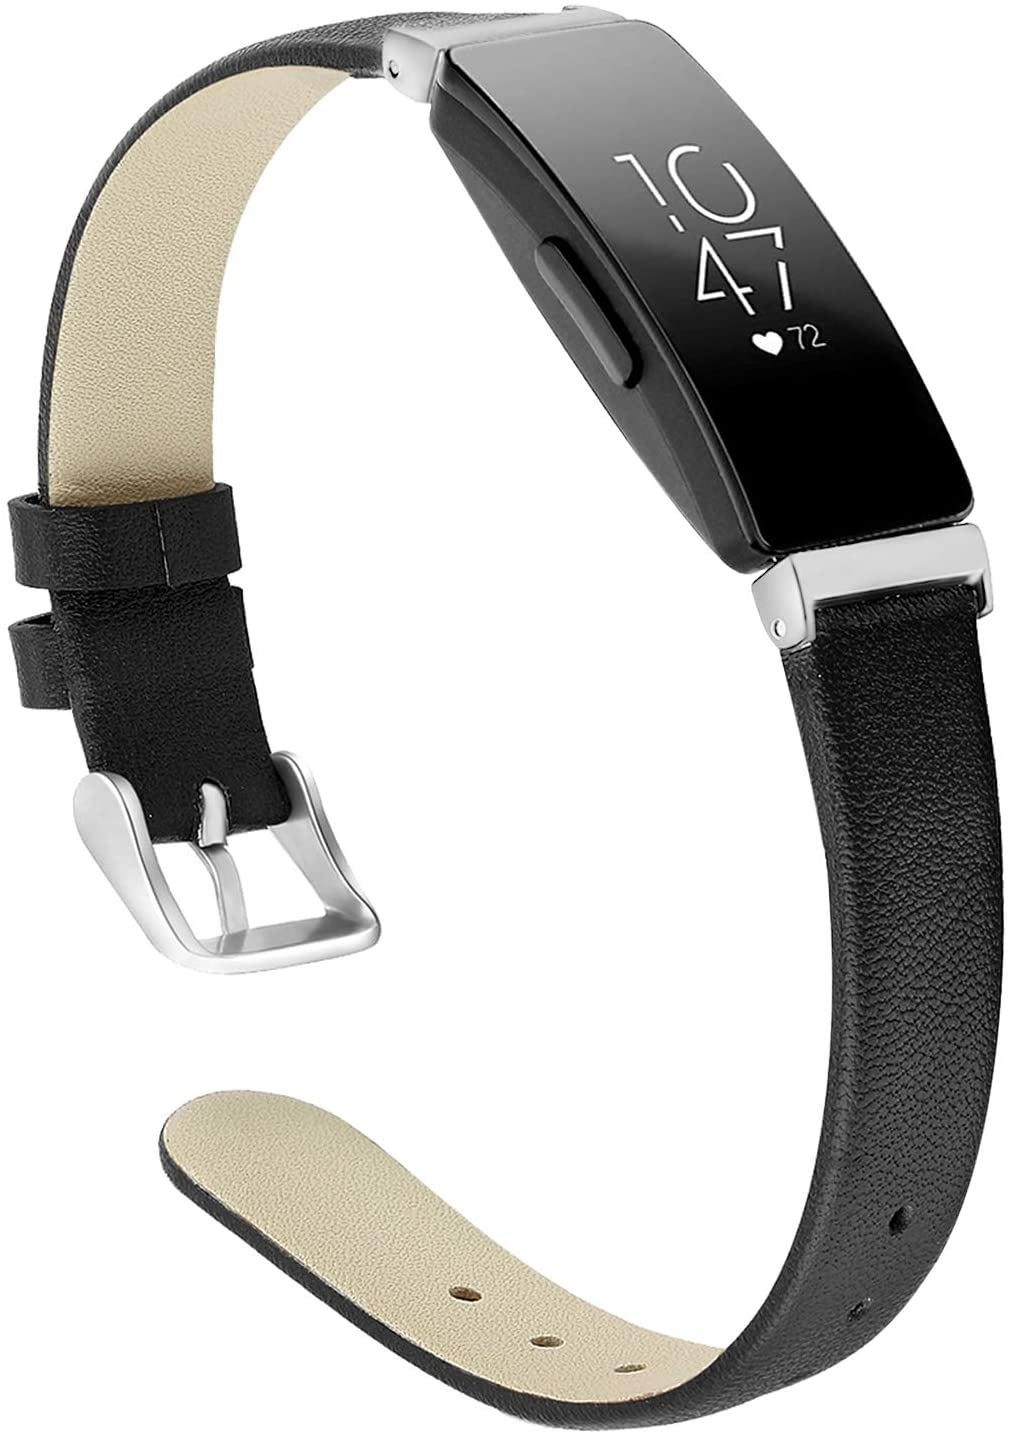 OwnZone Leather Bands Compatible with Fitbit Inspire & Inspire HR Bands for Women Men, Soft Leather Wristbands Classic Leather Strap Accessories Replacement for Fitbit Inspire Fitness Tracker(Black)